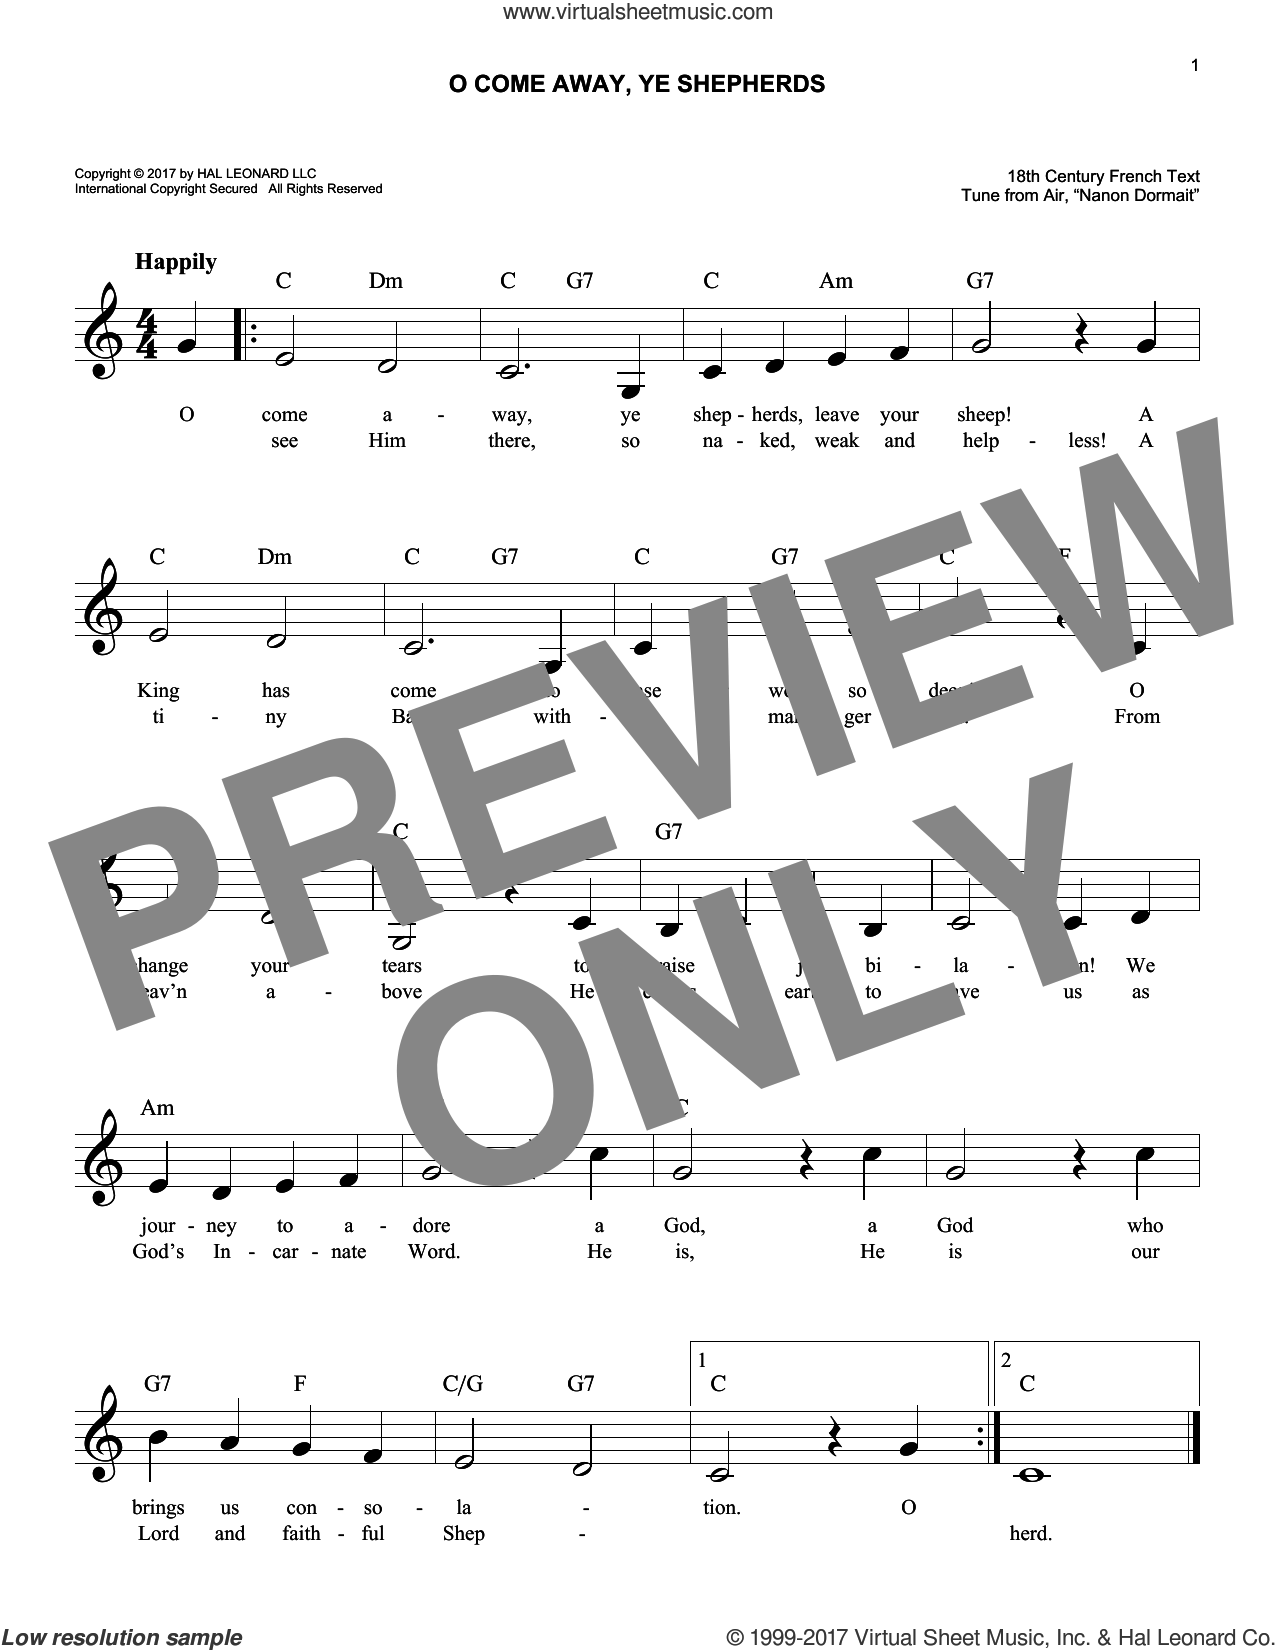 O Come Away, Ye Shepherds sheet music for voice and other instruments (fake book) by Anonymous, 18th Century French and From Air, 'Nanon Dormait', intermediate skill level